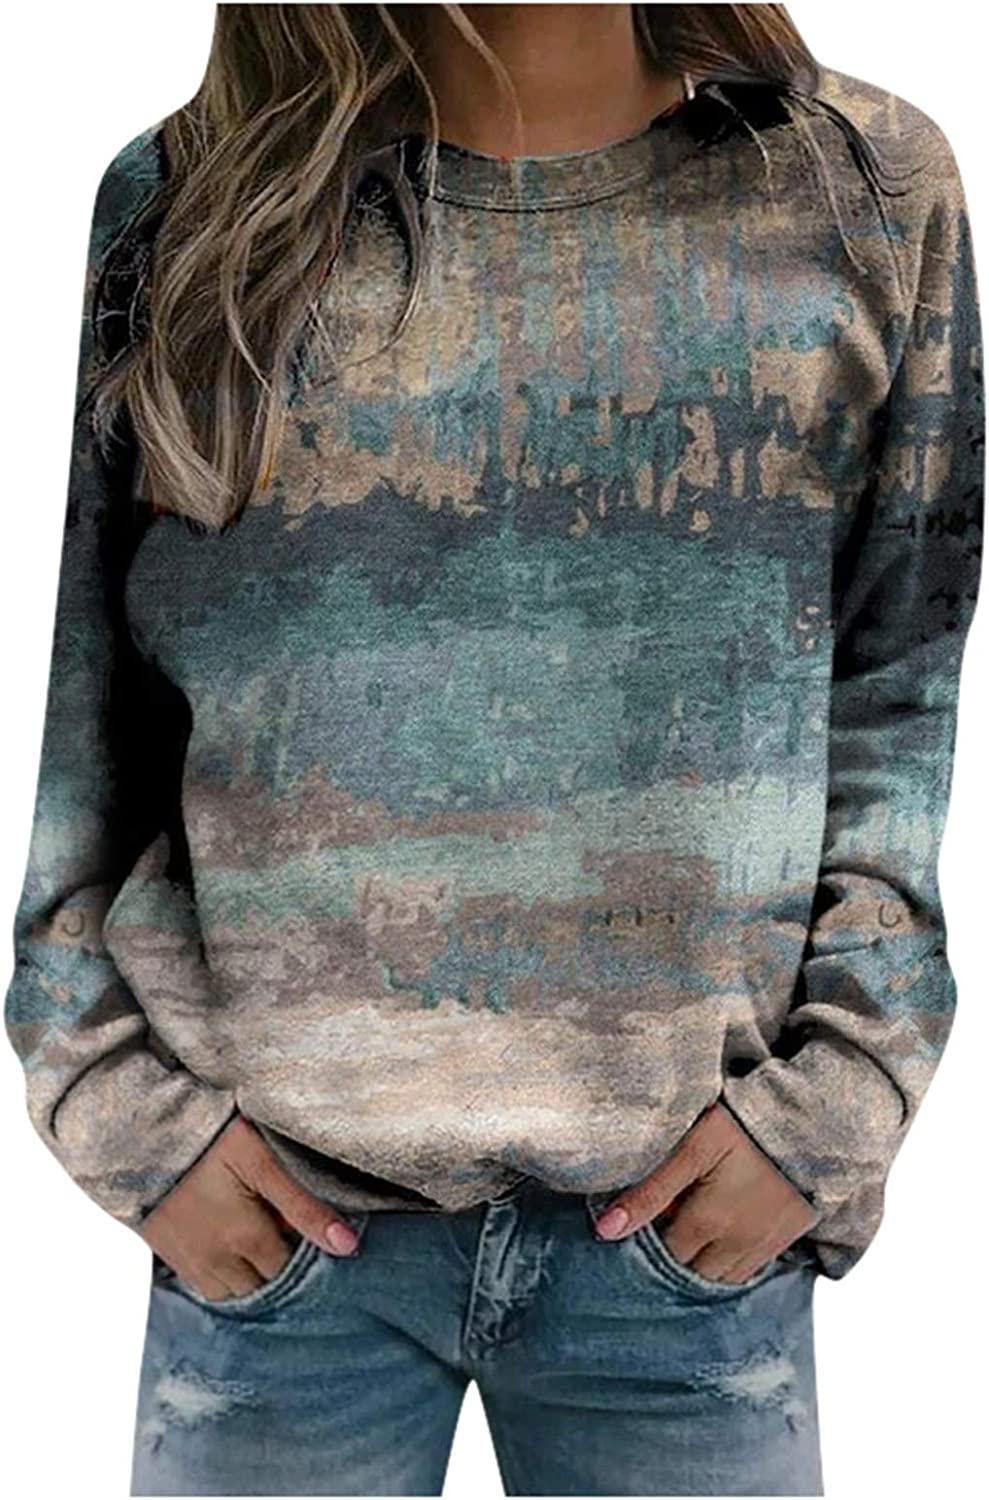 ONHUON Summer Tops for Women,Womens Tops Casual Striped T Shirts for Summer Printed Blouses Long Sleeve Tunics Tops